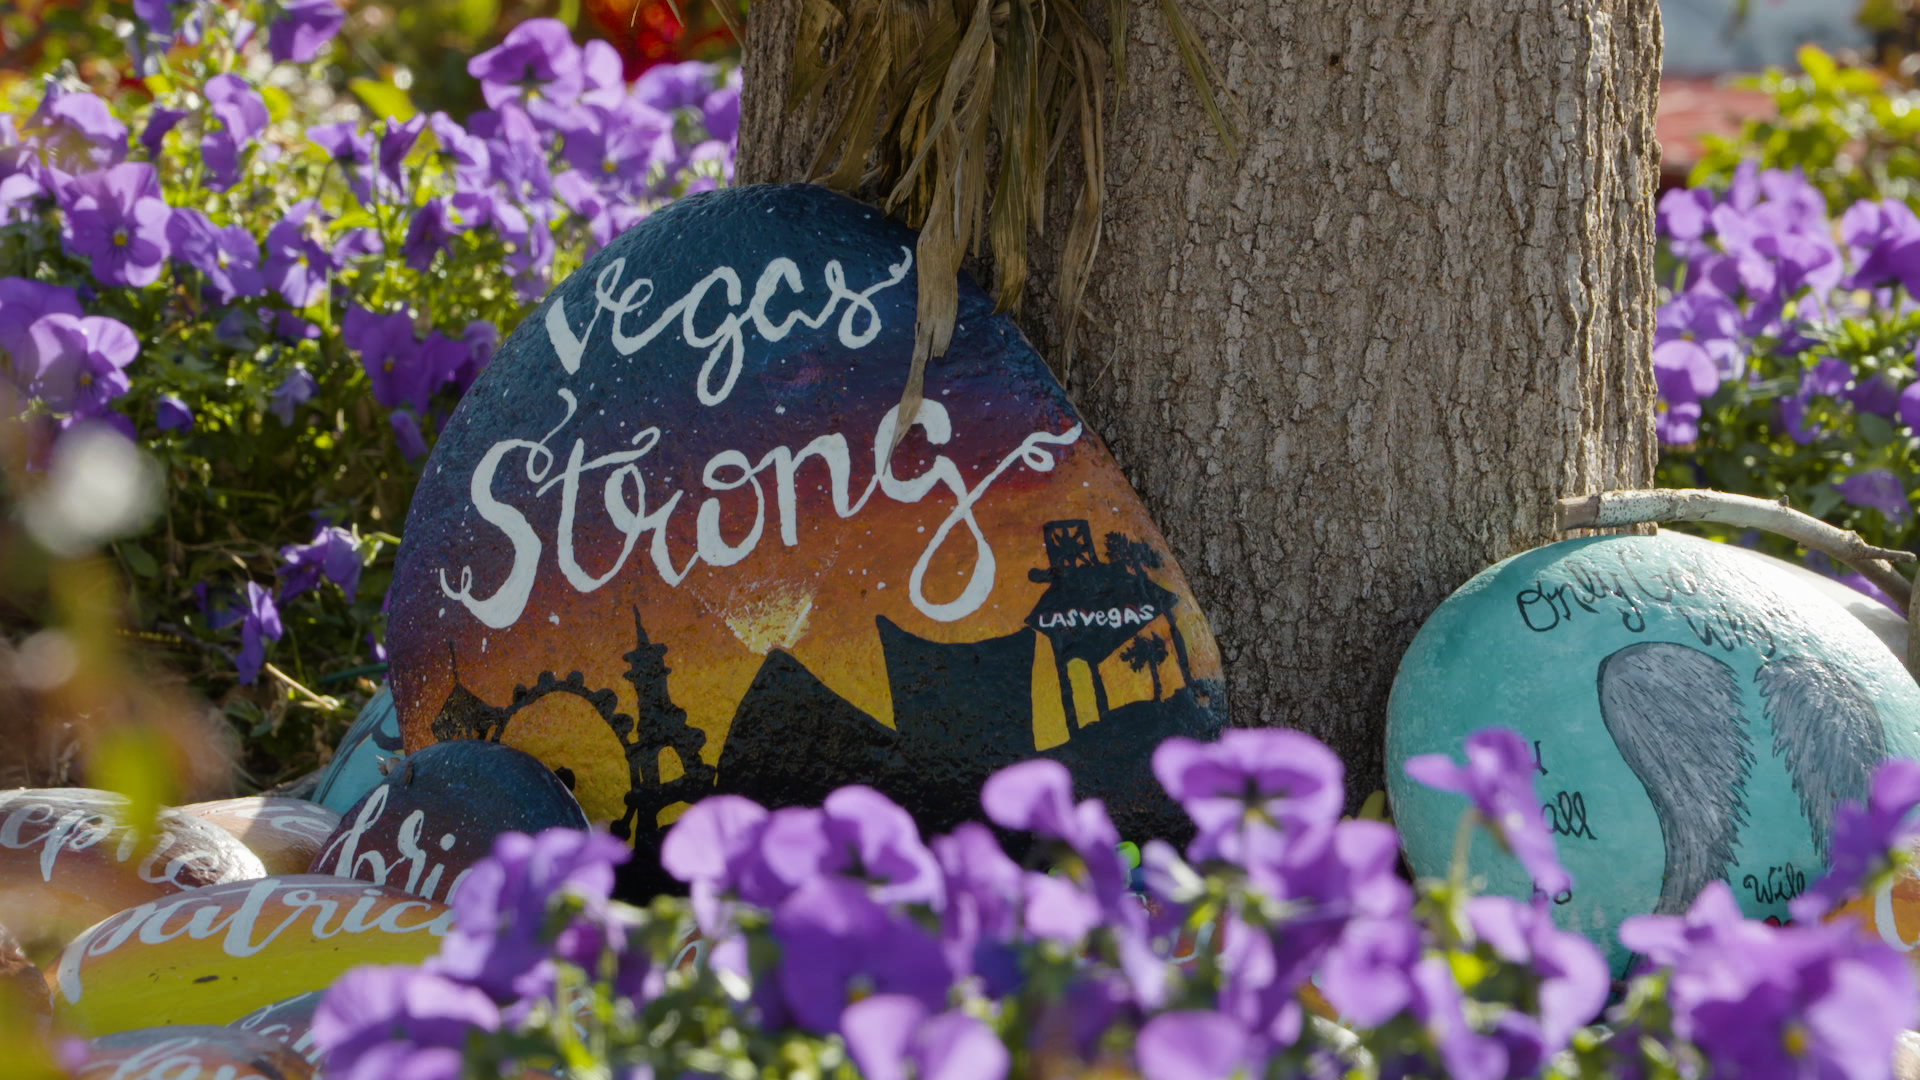 Vegas Strong rocks at memorial garden